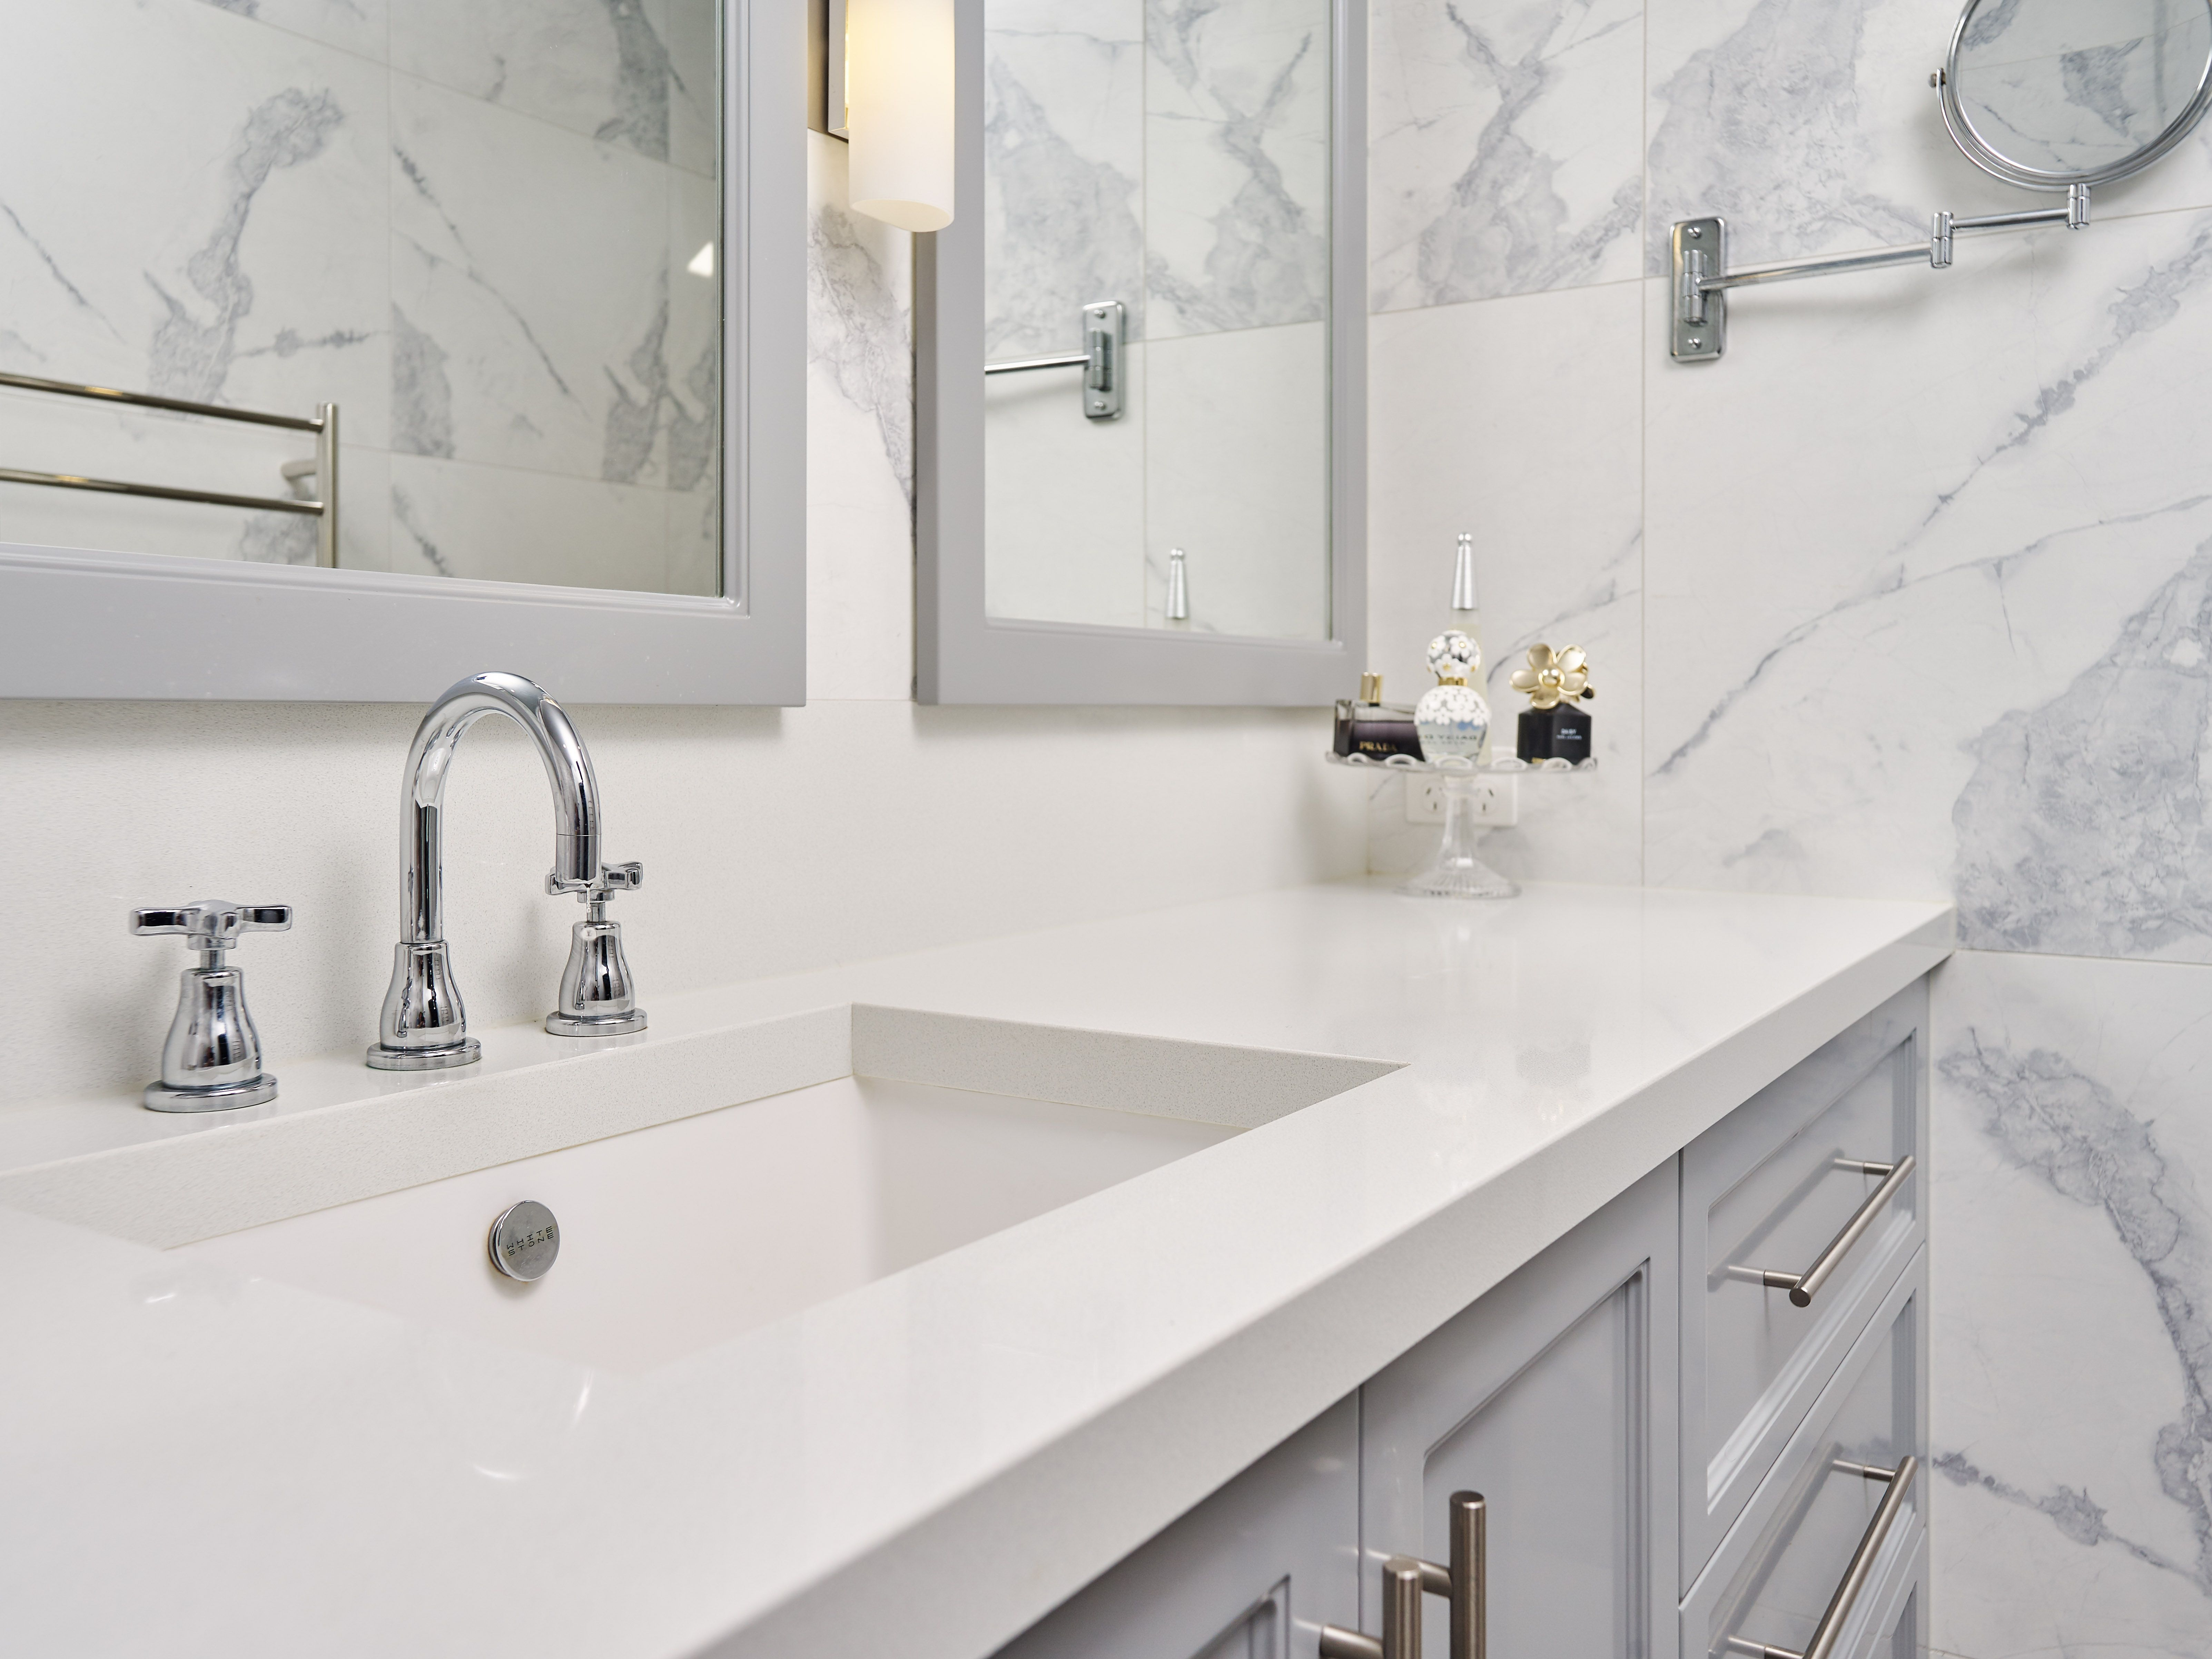 Granite Transformations Bathroom Renovations Photo Gallery | Granite ...